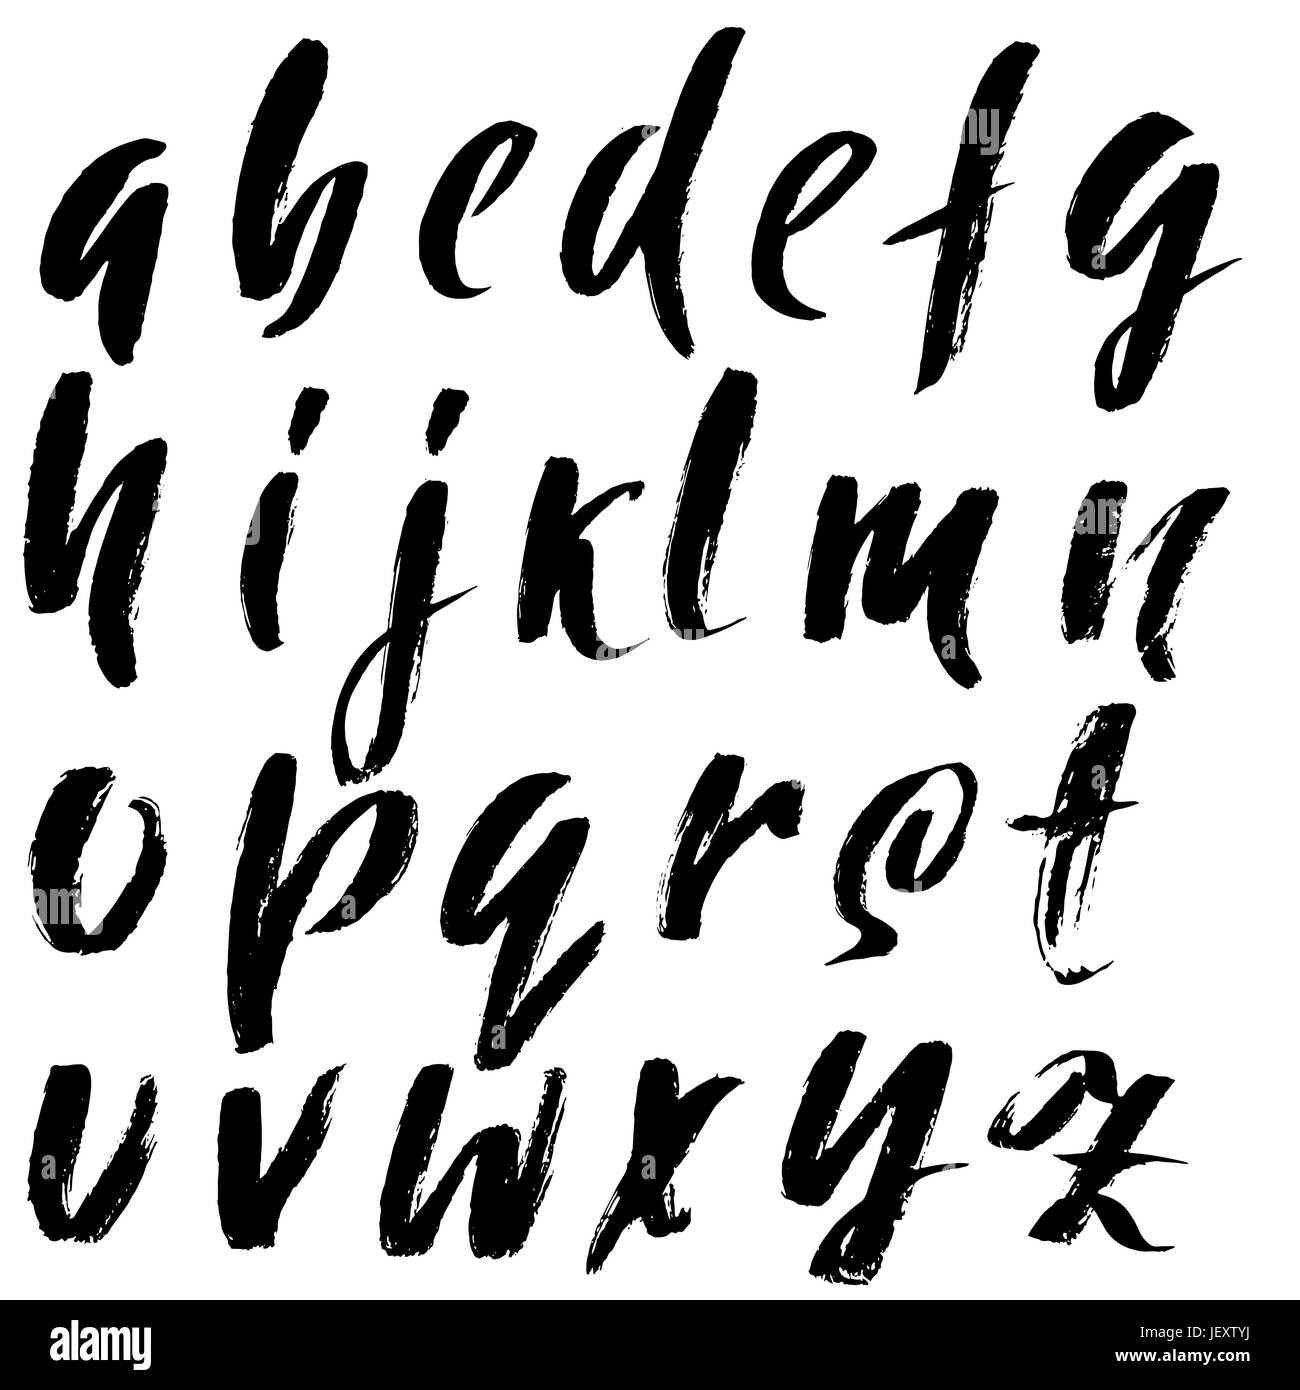 Hand drawn elegant calligraphy font modern brush lettering grunge style alphabet vector illustration